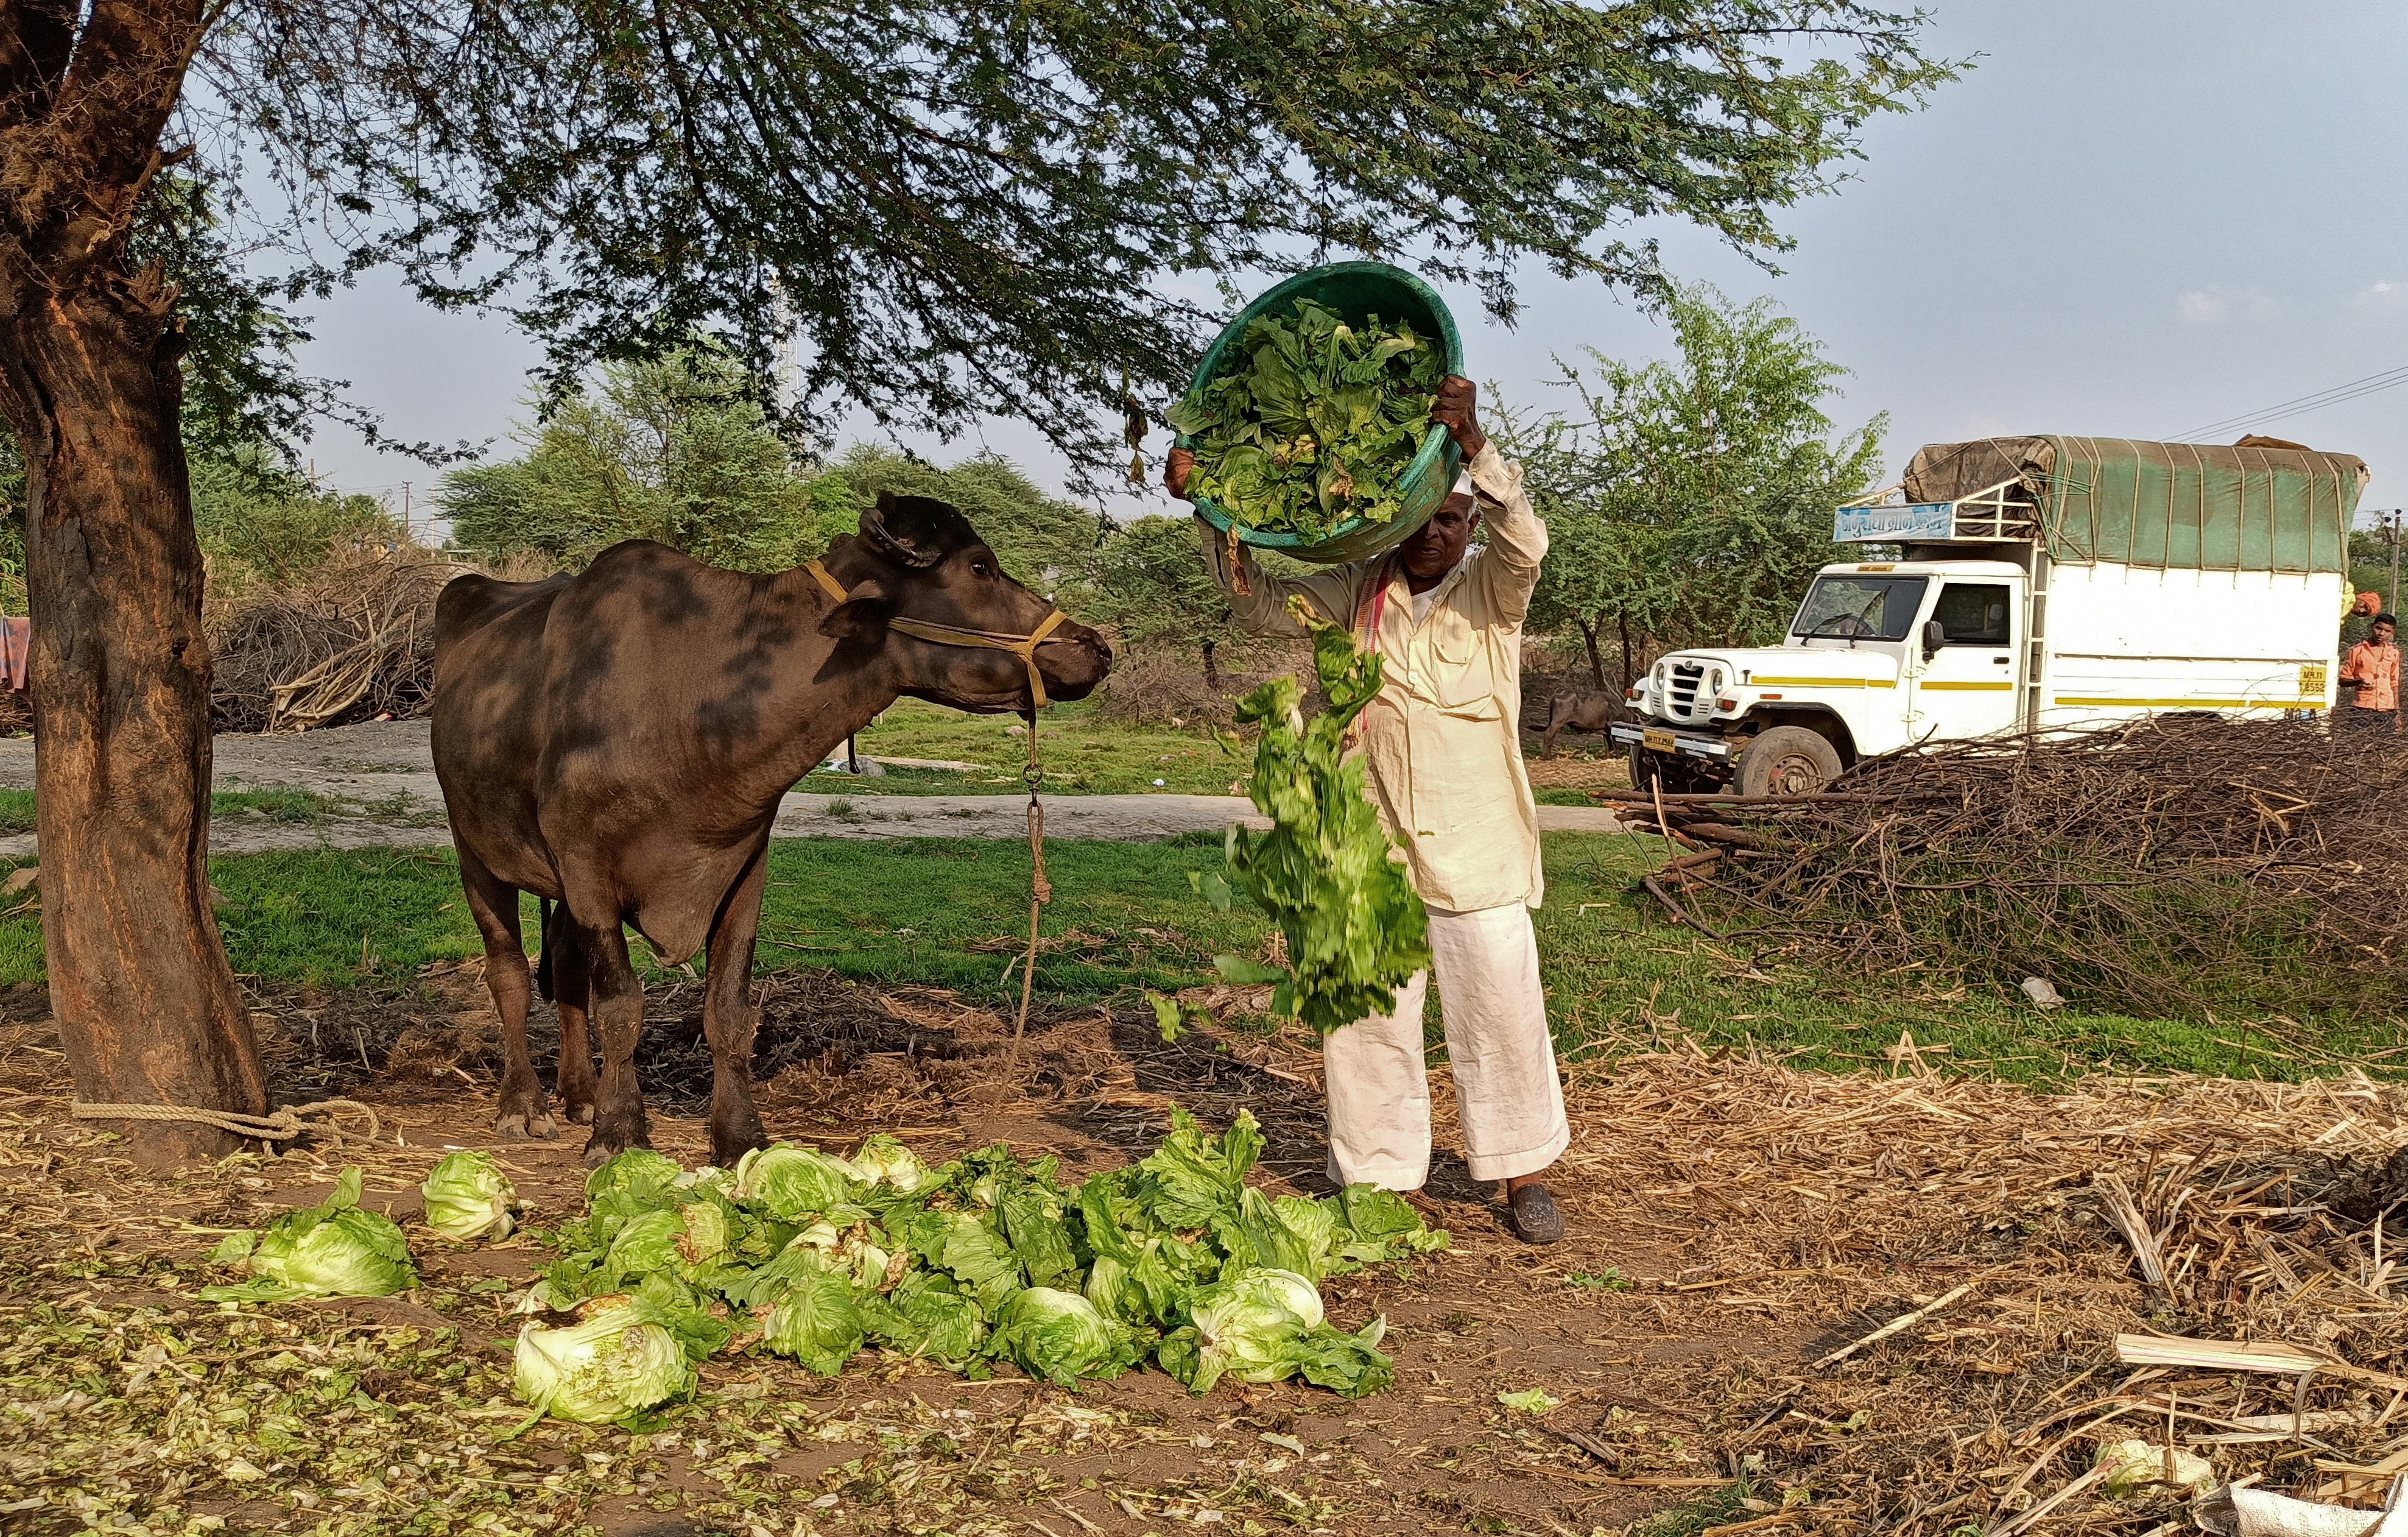 A farmer feeds iceberg lettuce to his buffalo during a 21-day nationwide lockdown to slow the spreading of coronavirus disease (COVID-19), at Bhuinj village in Satara district in the western state of Maharashtra, India, April 1, 2020. REUTERS/Rajendra Jadhav/File Photo